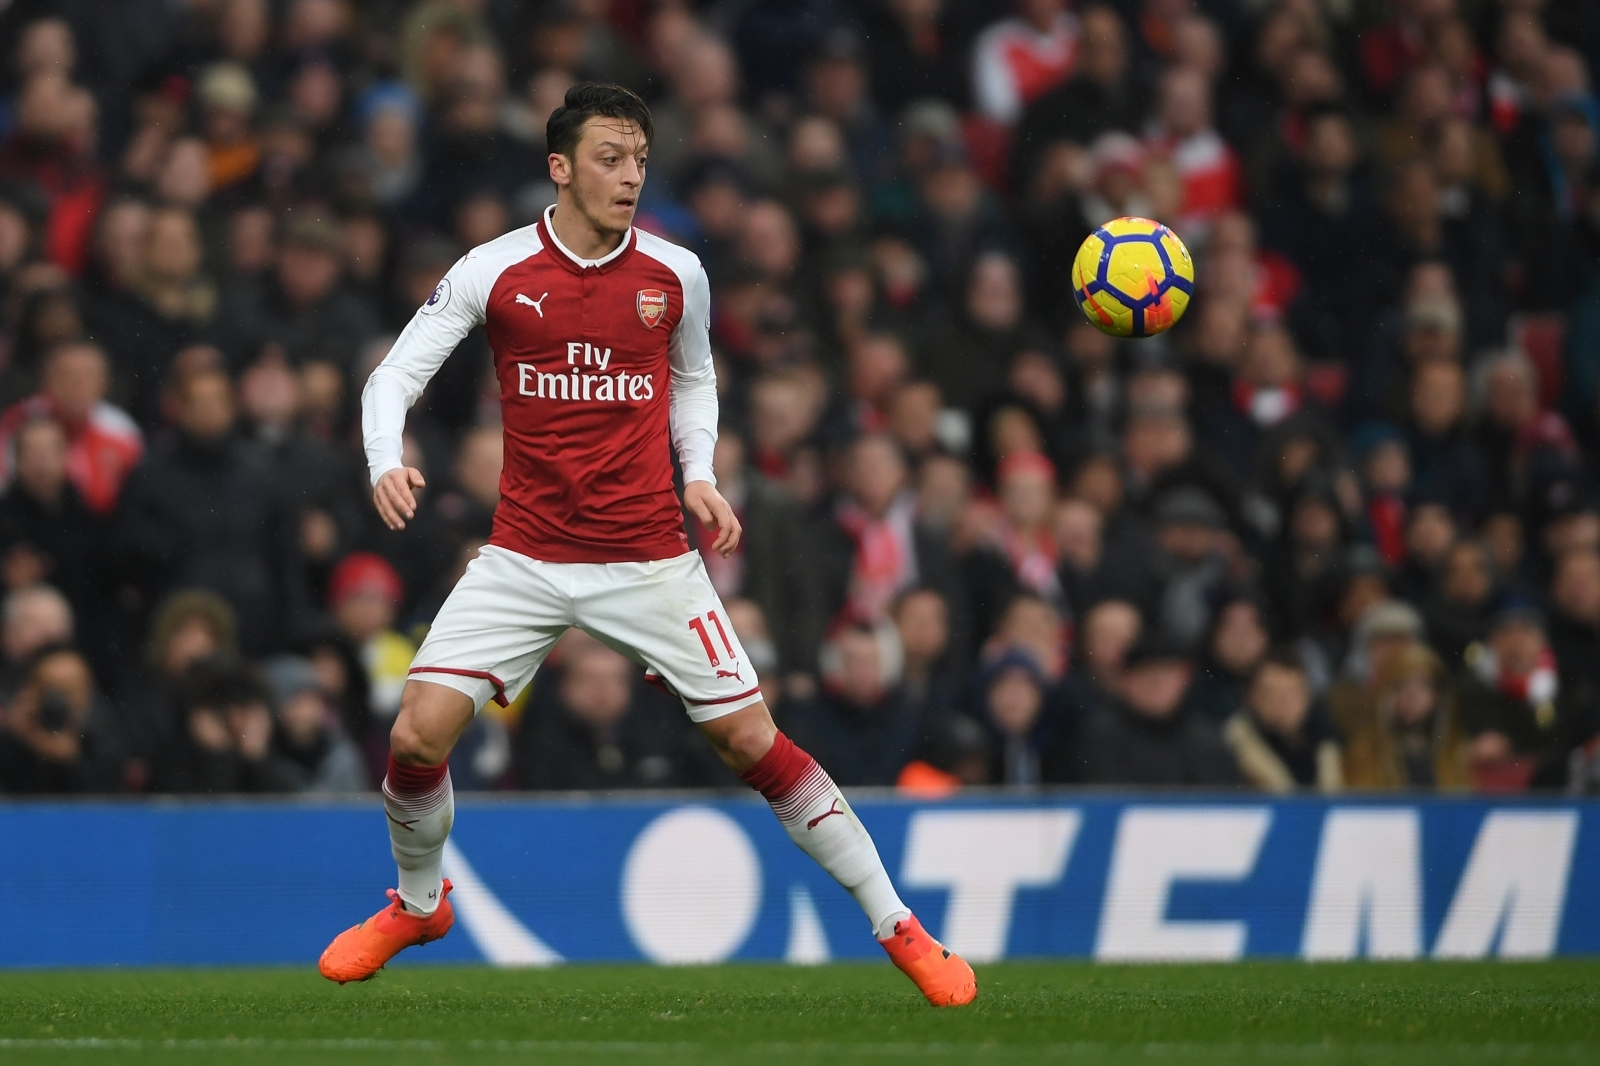 Arsenal tell Barcelona how much they want for Mesut Ozil